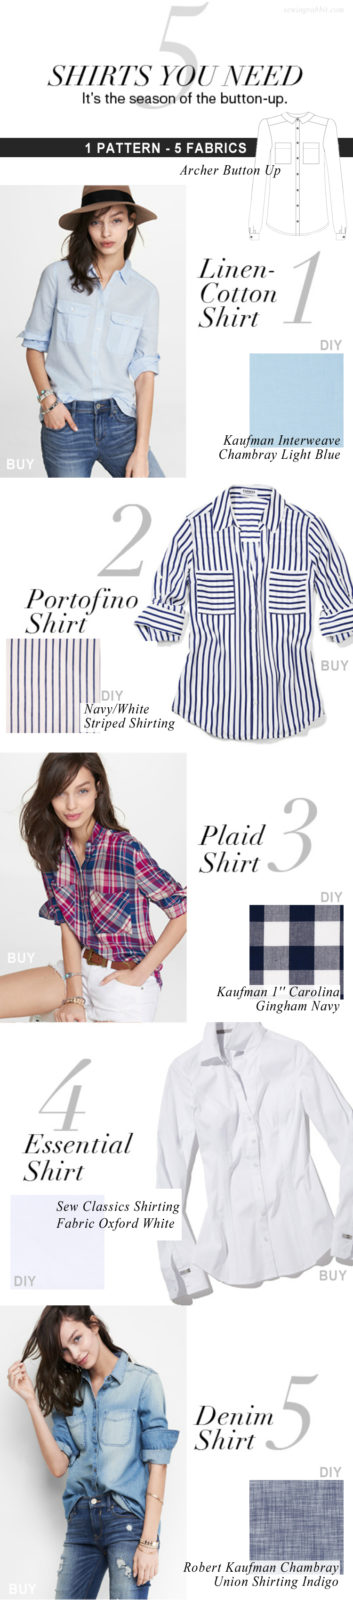 5 Shirts you Need RIGHT Now - Buy VS DIY